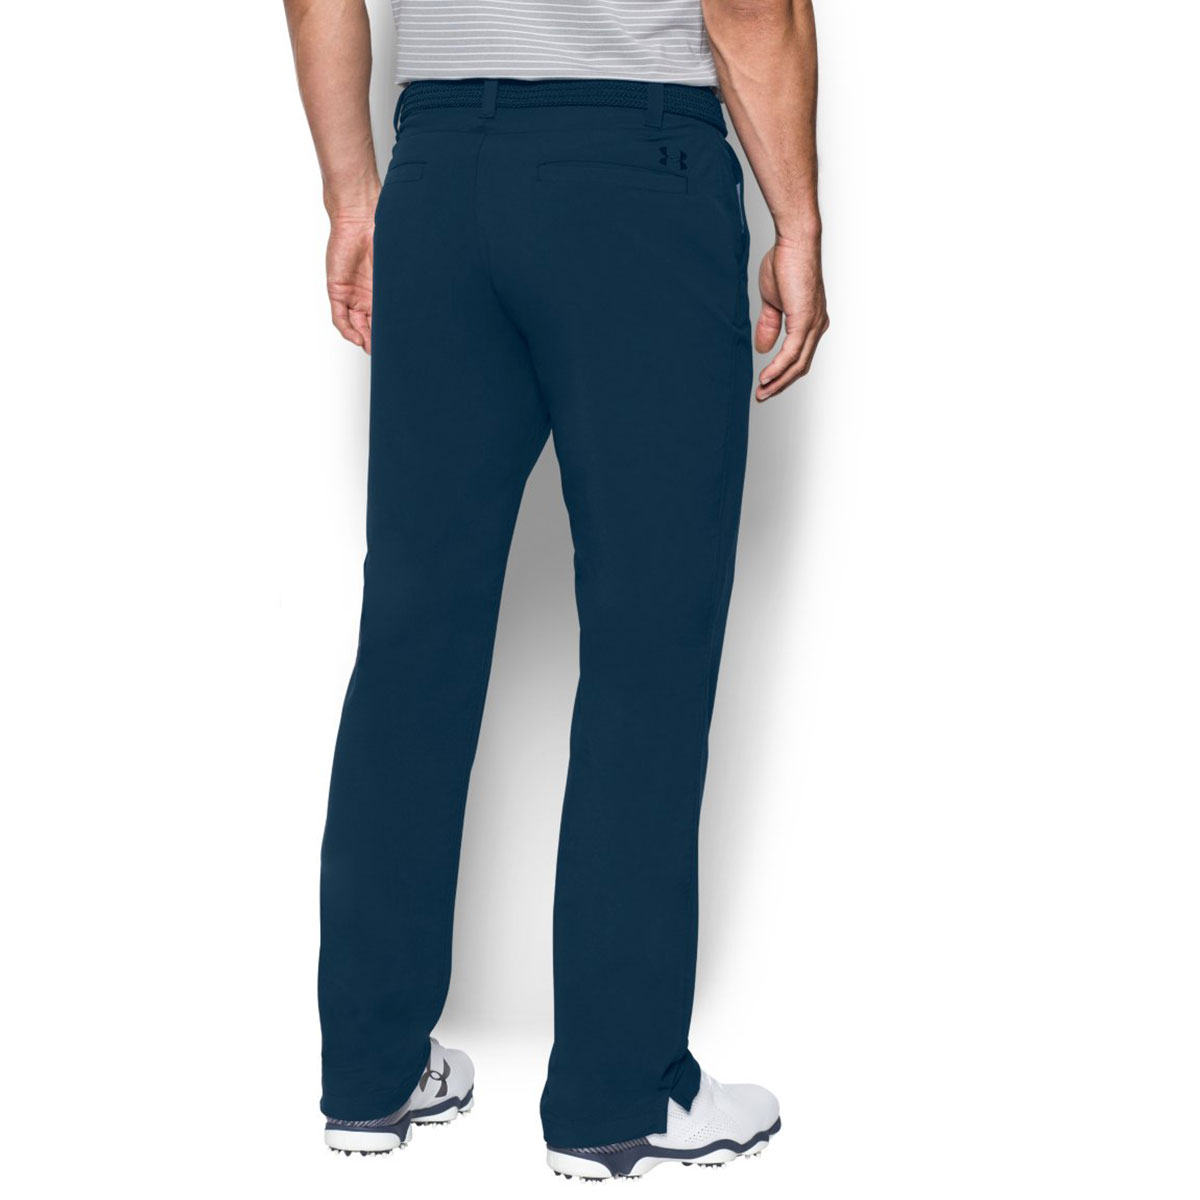 Under-Armour-Mens-UA-Matchplay-Pant-Soft-Stretch-Golf-Trousers-34-OFF-RRP miniatuur 6